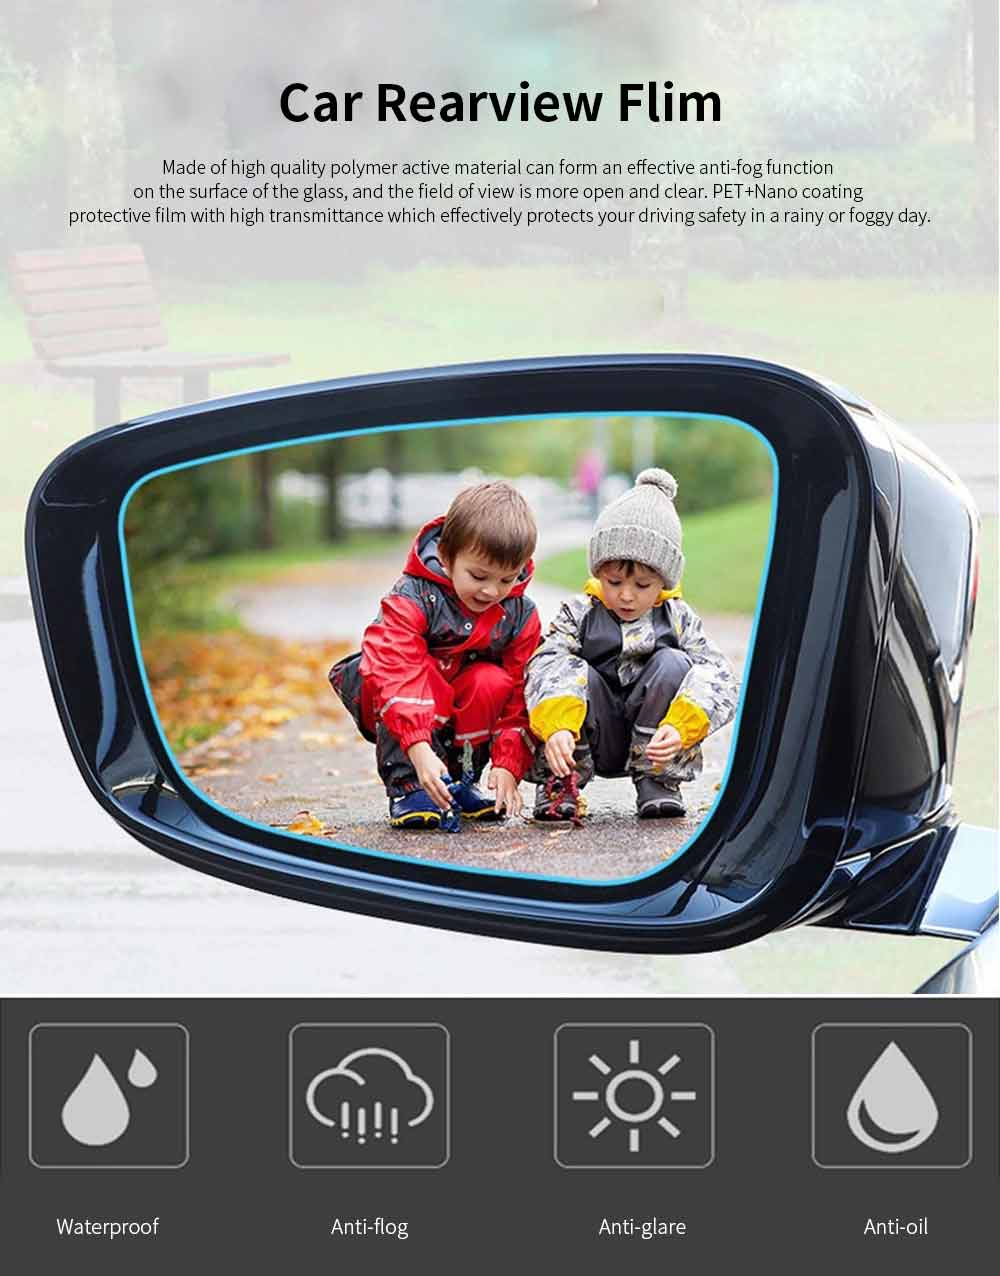 Car Rearview Mirror Glass Film Rainproof Anti-Fog Film Dust-Proof Anti-Glare Anti-Scratch Protective Film 0